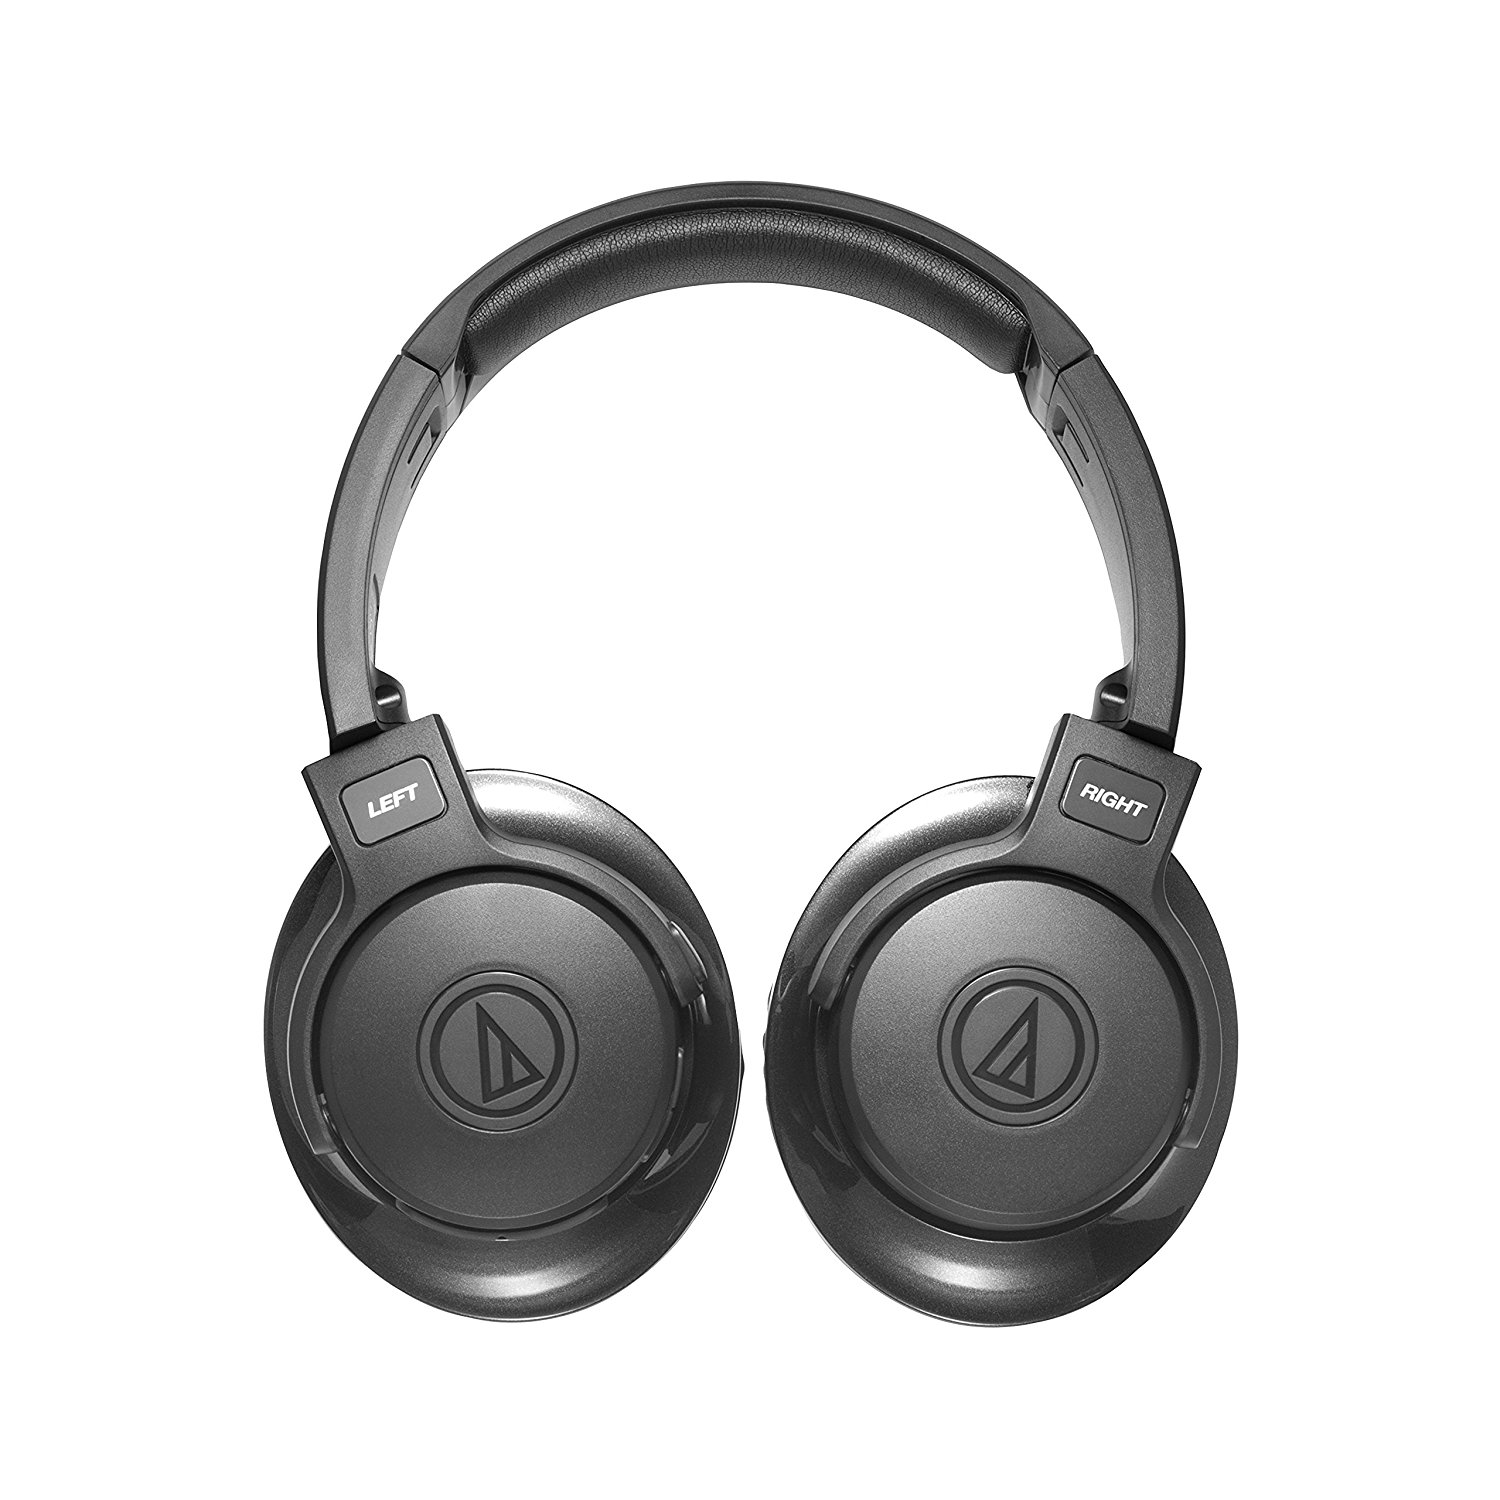 U Shop V Deliver Audio Technica Ath Ws990bt Red Hi Res Solid Bass Bluetooth Headphone Anc700bt Wireless Noise Cancelling Headphones Black